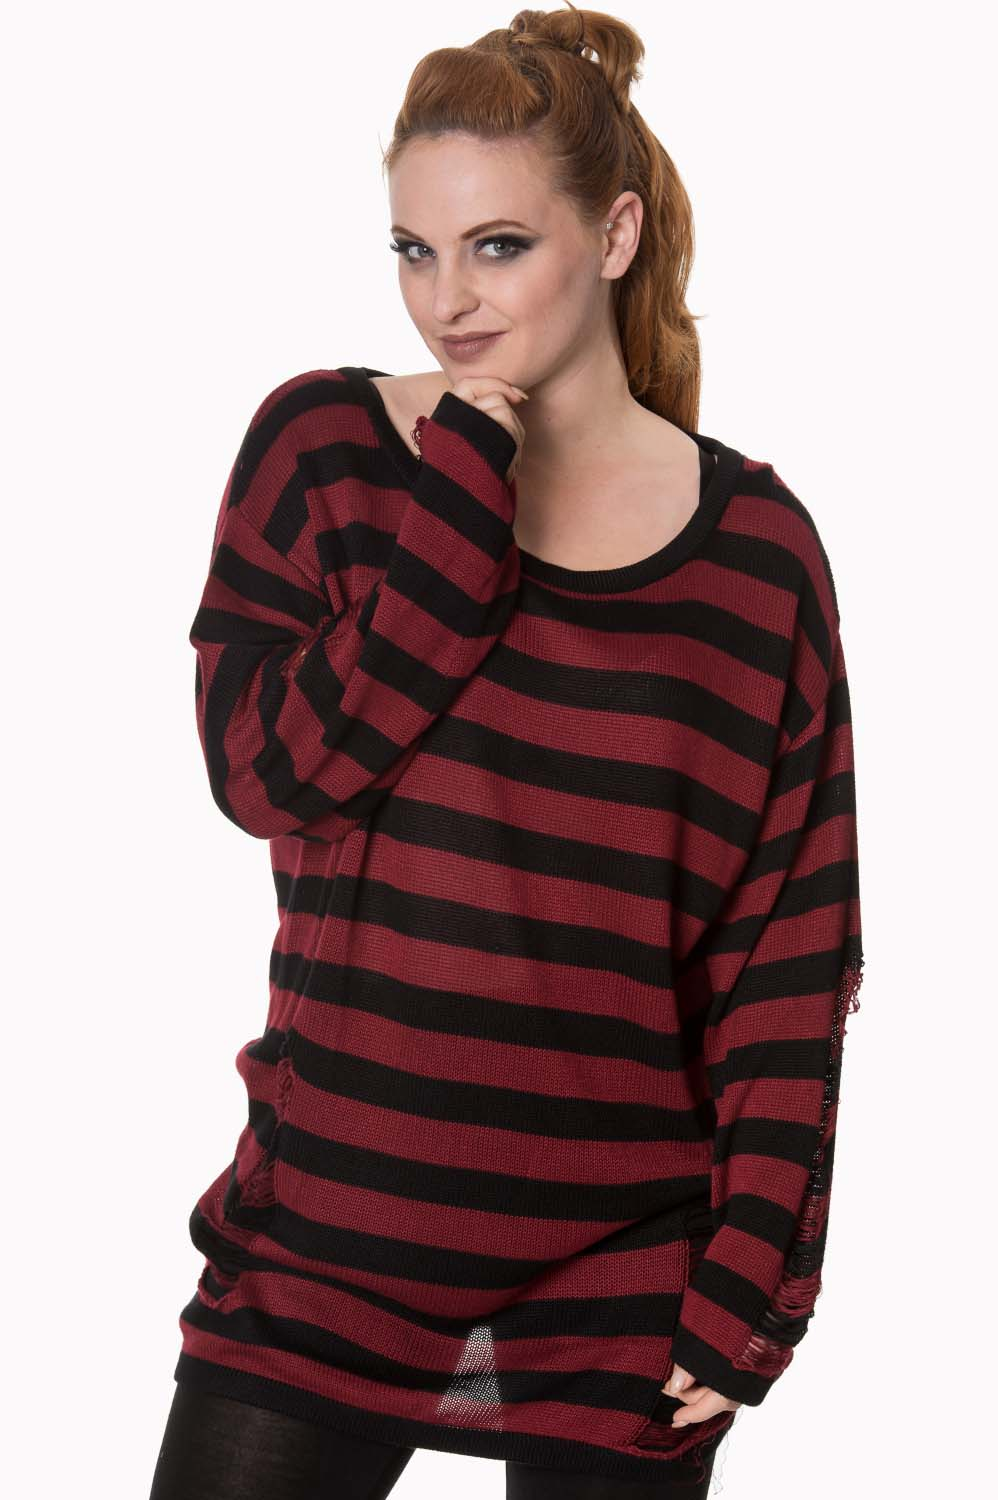 fdf9ec6053 Touch Break Striped Oversized Distressed Sweater by Banned Apparel - red    black stripe - SALE